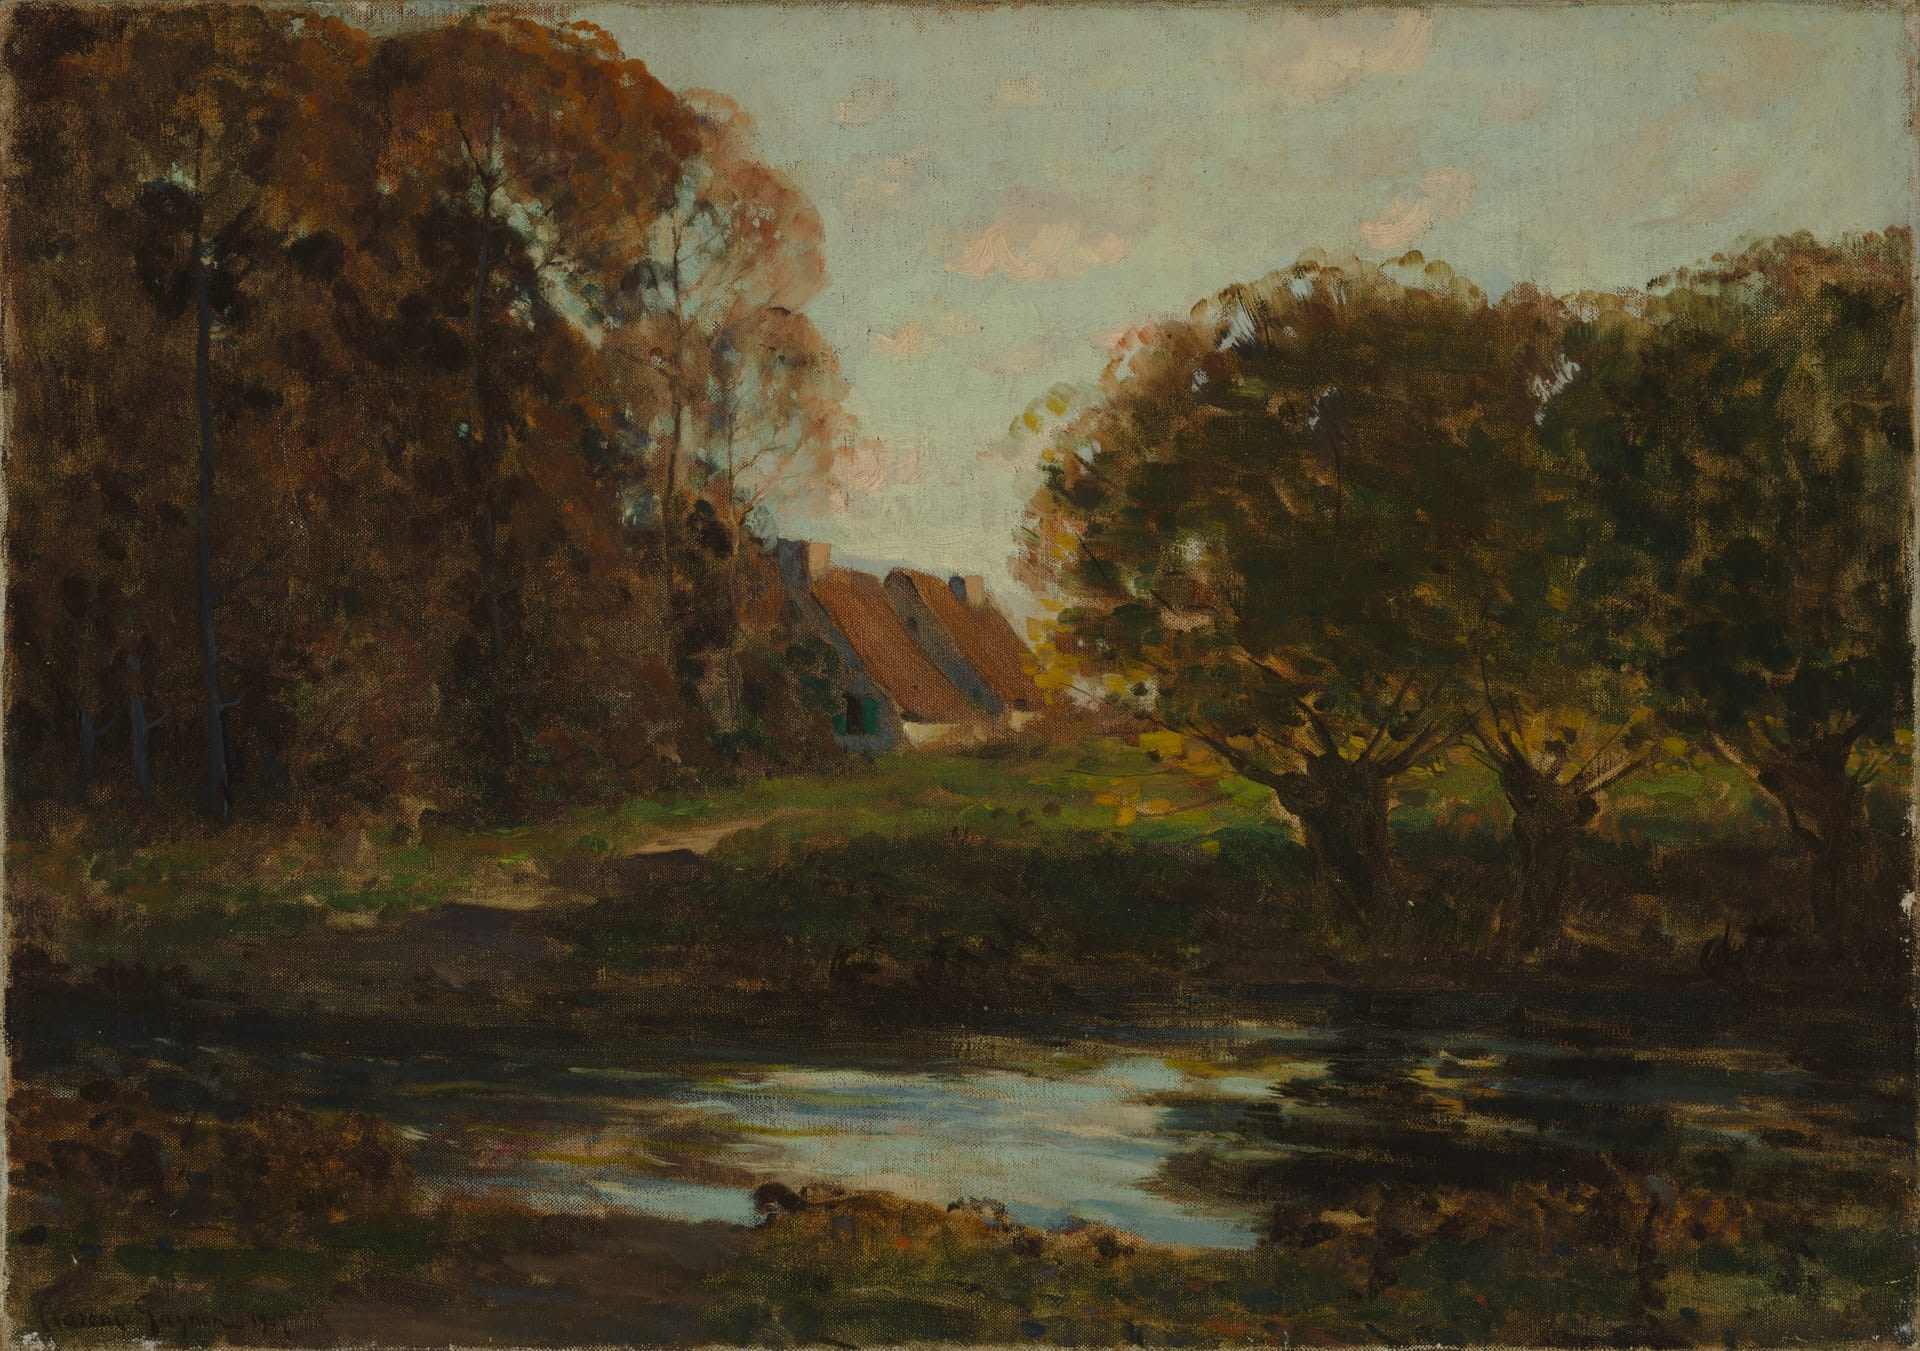 Clarence A. Gagnon, R.C.A. 1881-1942, Scène d'automne / Autumn scene, 1907, Oil on canvas, 46 x 65.4 cm (18 x 25 ¾ in), Collection of the Musée national des beaux-arts du Québec, Inventory No. 1949.85.